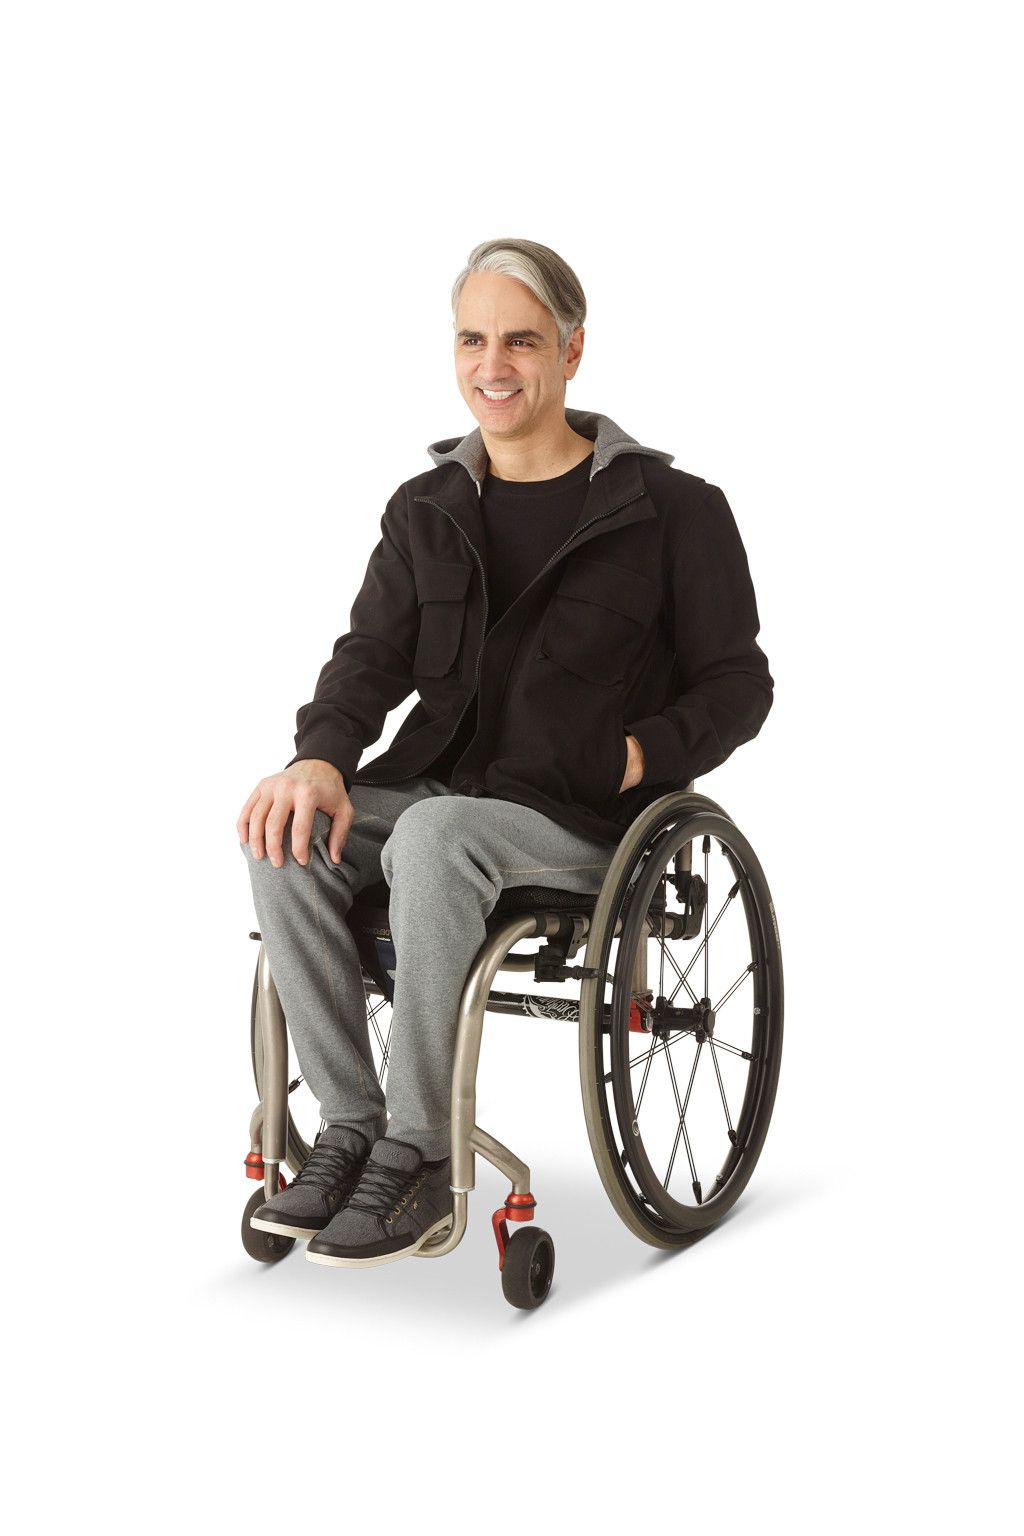 Iz Collection Bringing You The Latest Styles In Men S Fashion For Wheelchair Users Check Out The New Spring Collectio People Png Render People People Cutout